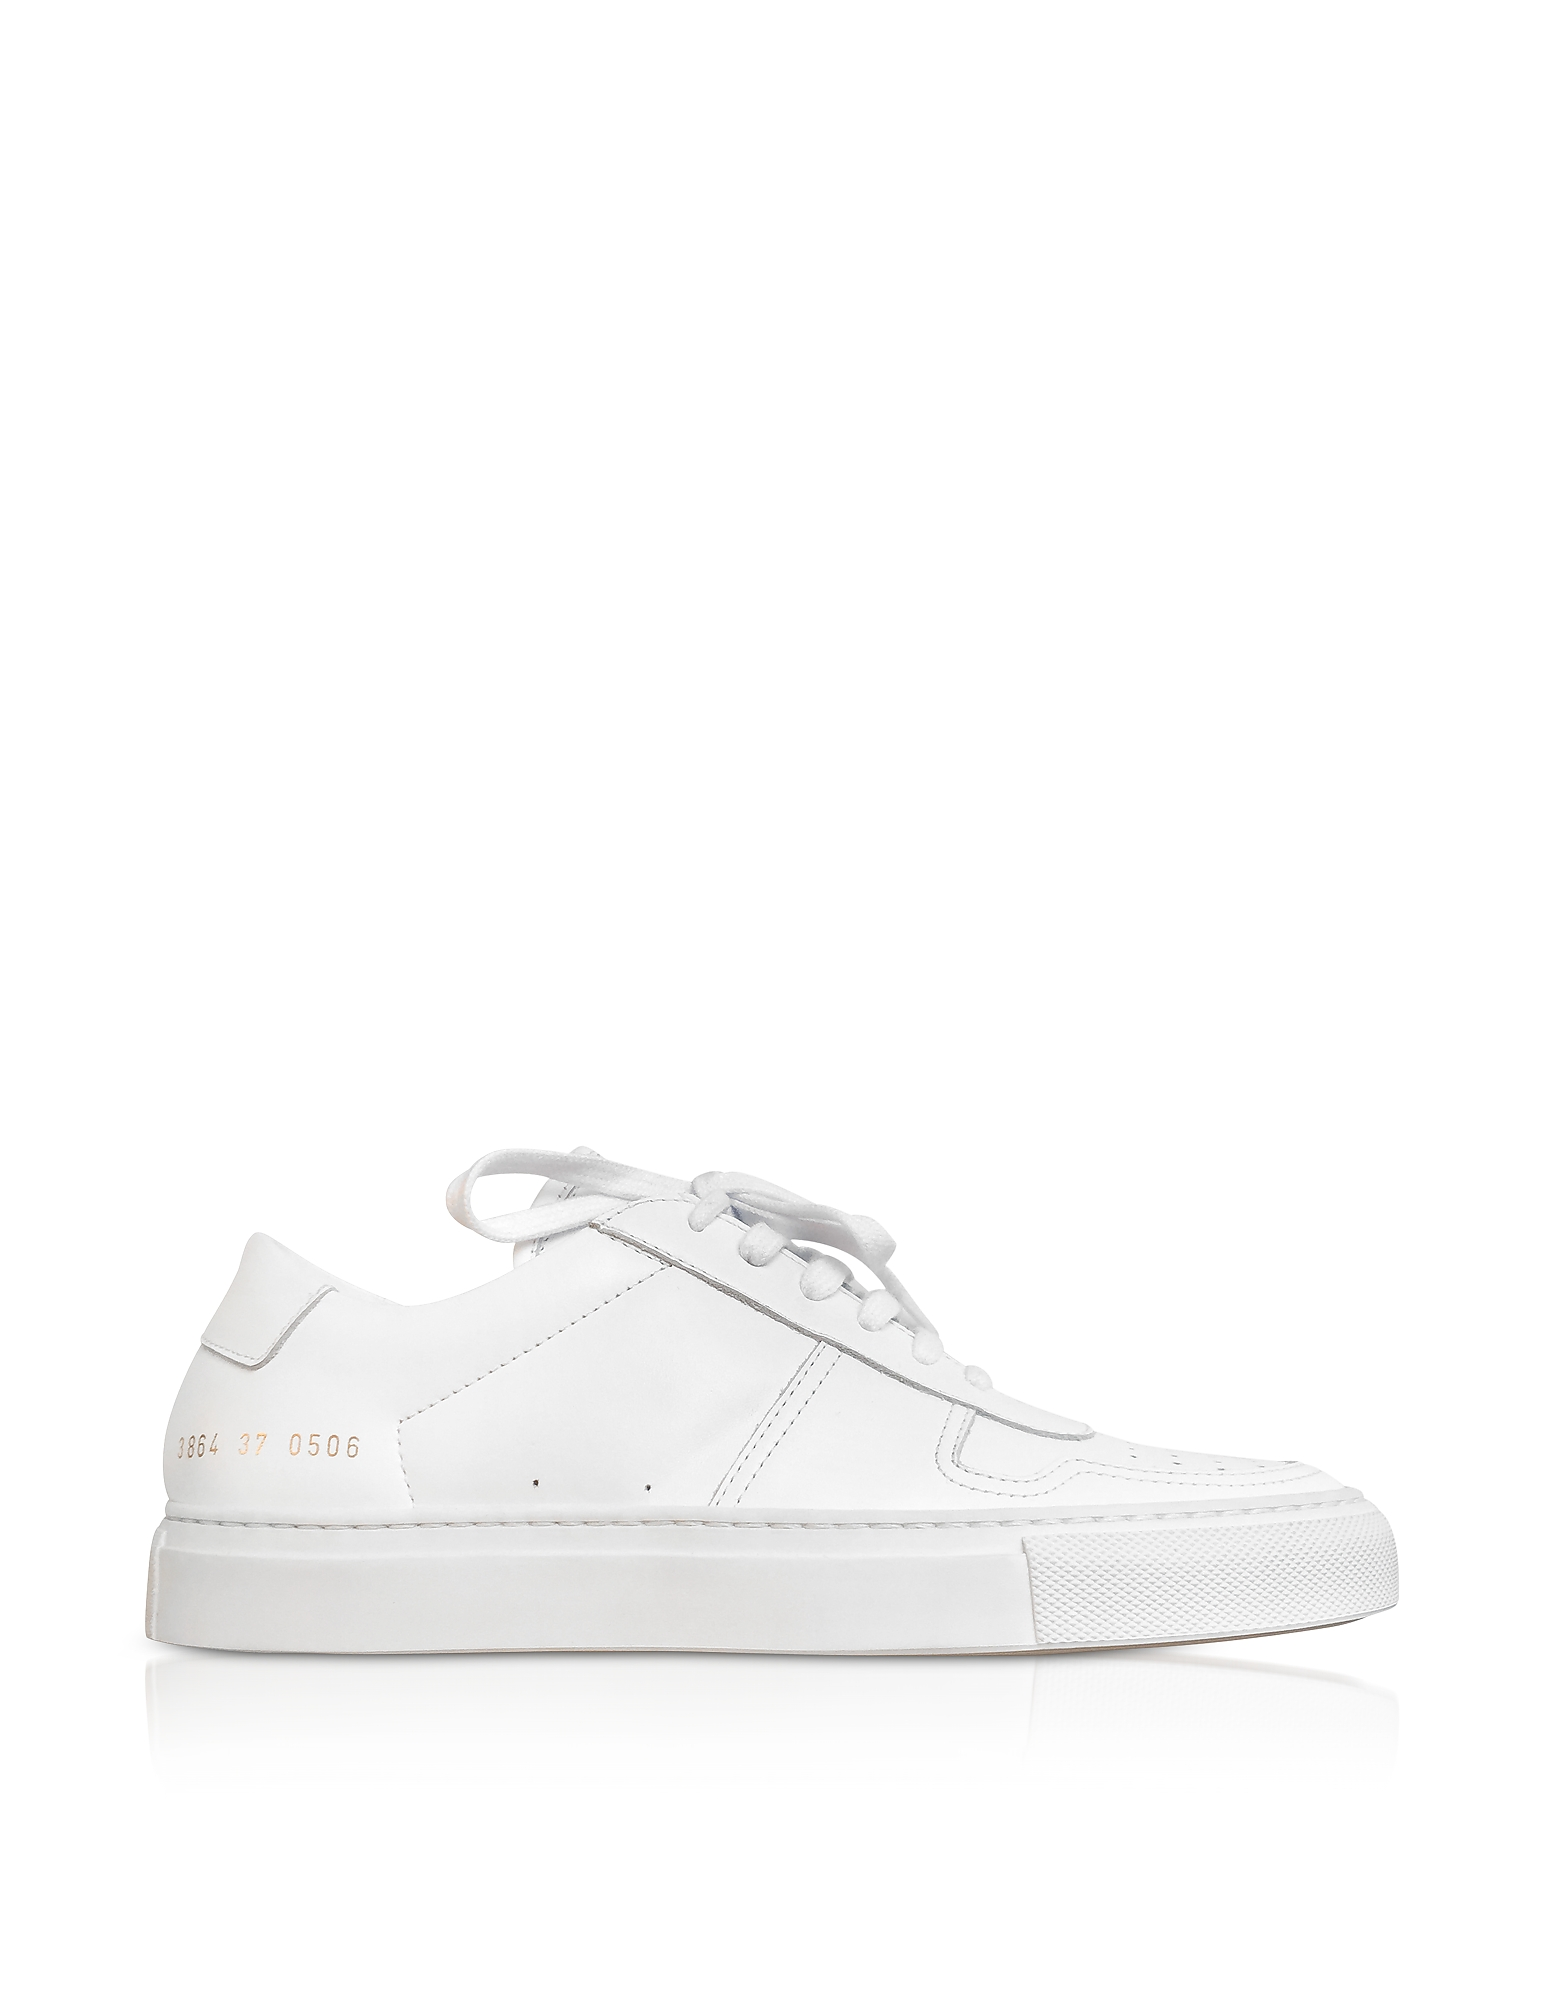 Bball Sneakers Low Top da Donna in Pelle Bianco Ottico